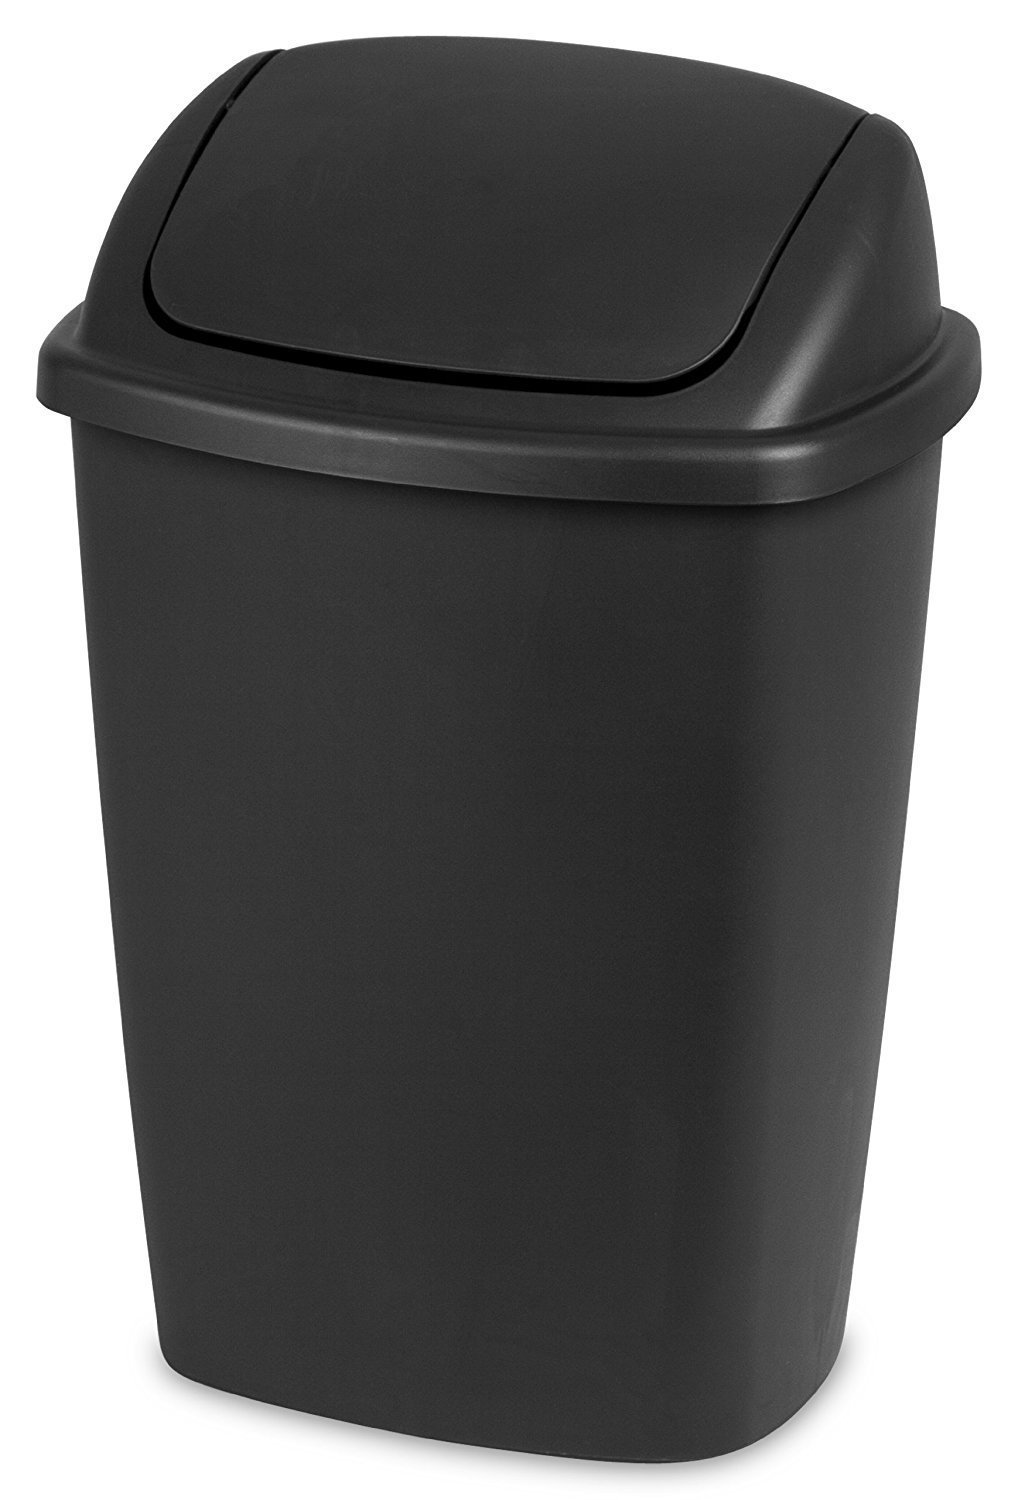 Sterilite® 7.5 Gallon Swing-Top Wastebasket - Black STERILITE- 10689006